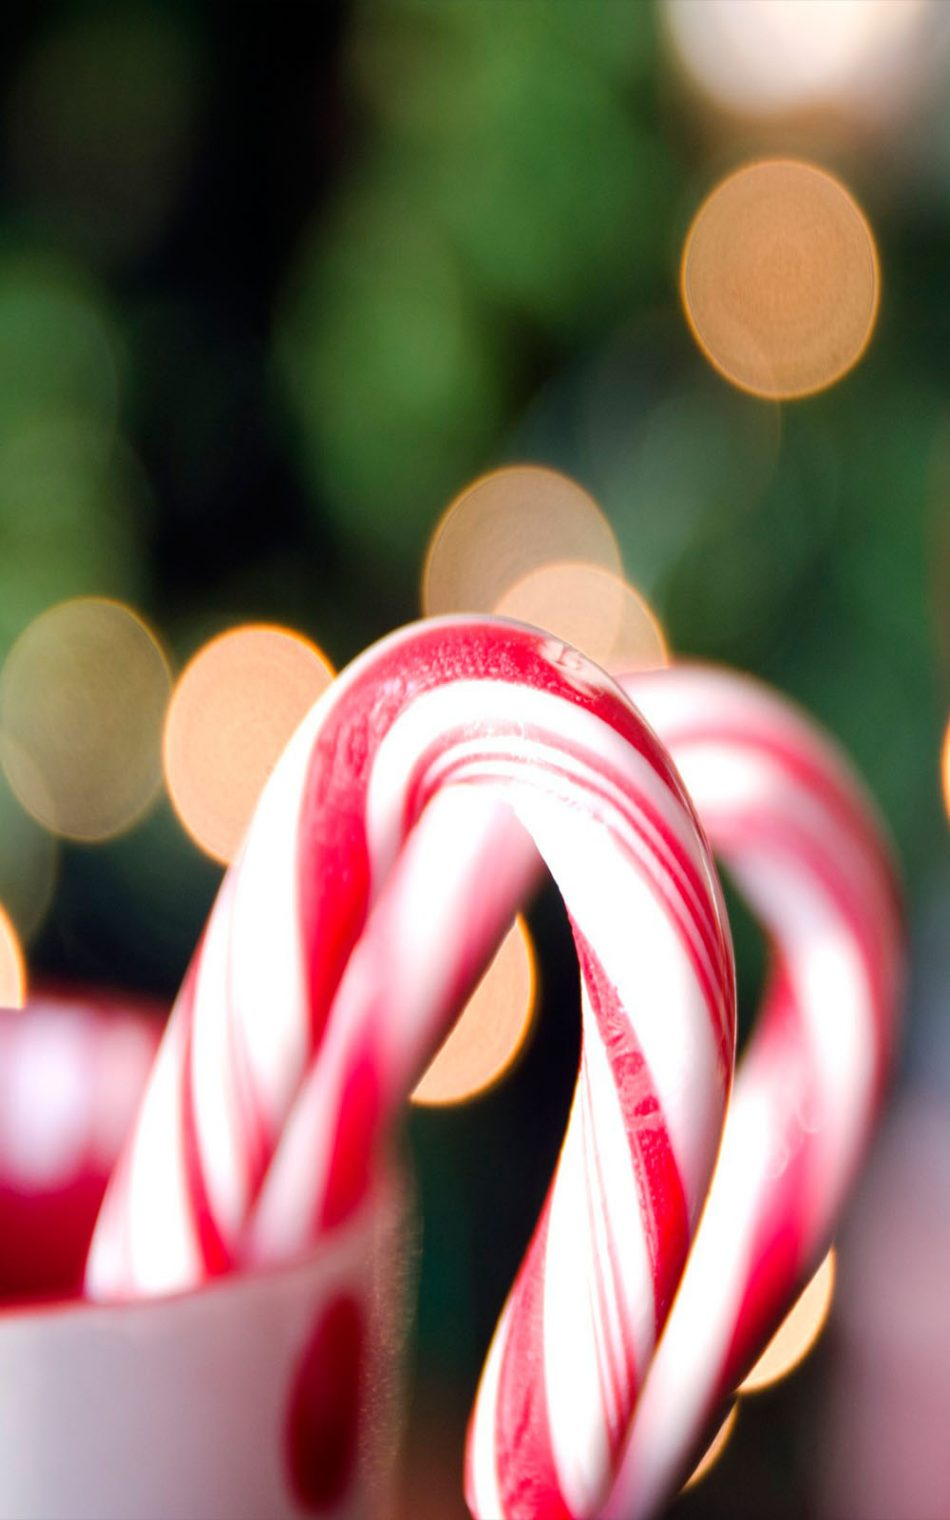 Top Wallpaper Mobile Sweet - Sweet-Christmas-Candy-HD-Mobile-Wallpaper-950x1520  Pictures_273810.jpg